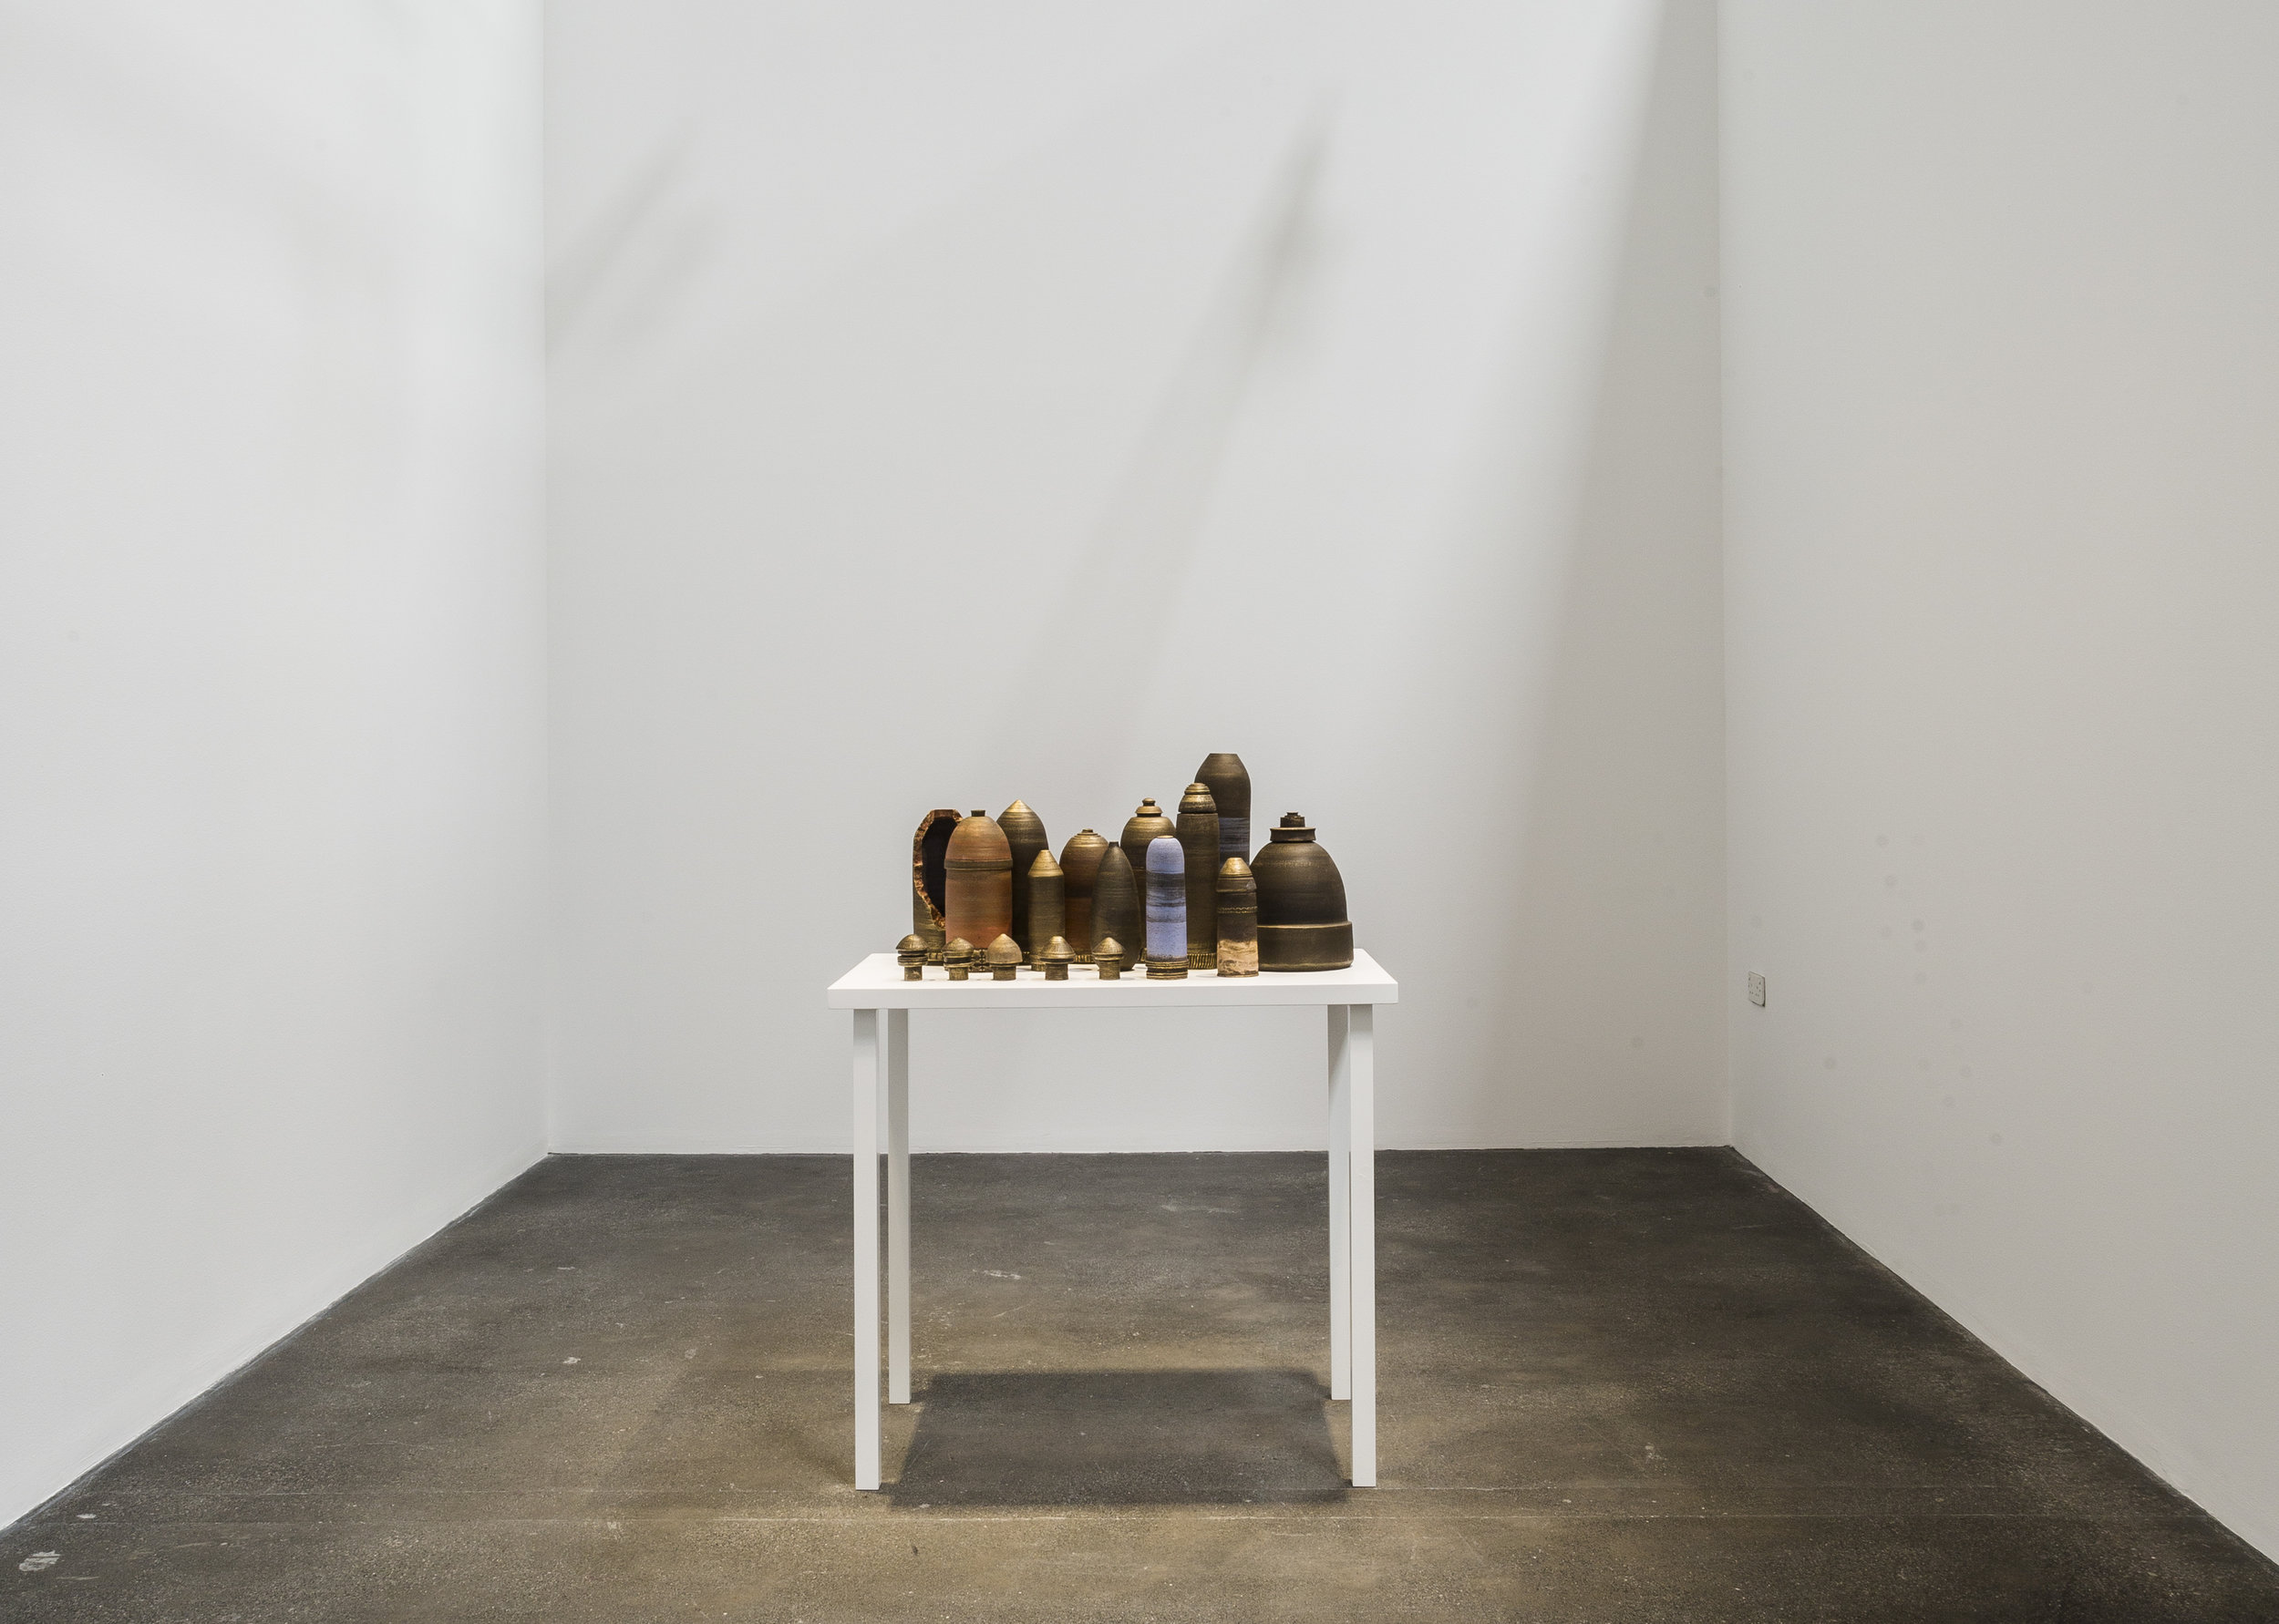 Title: Still Life Date: 2014 Medium: glazed ceramic and acrylic Size: dimensions variable